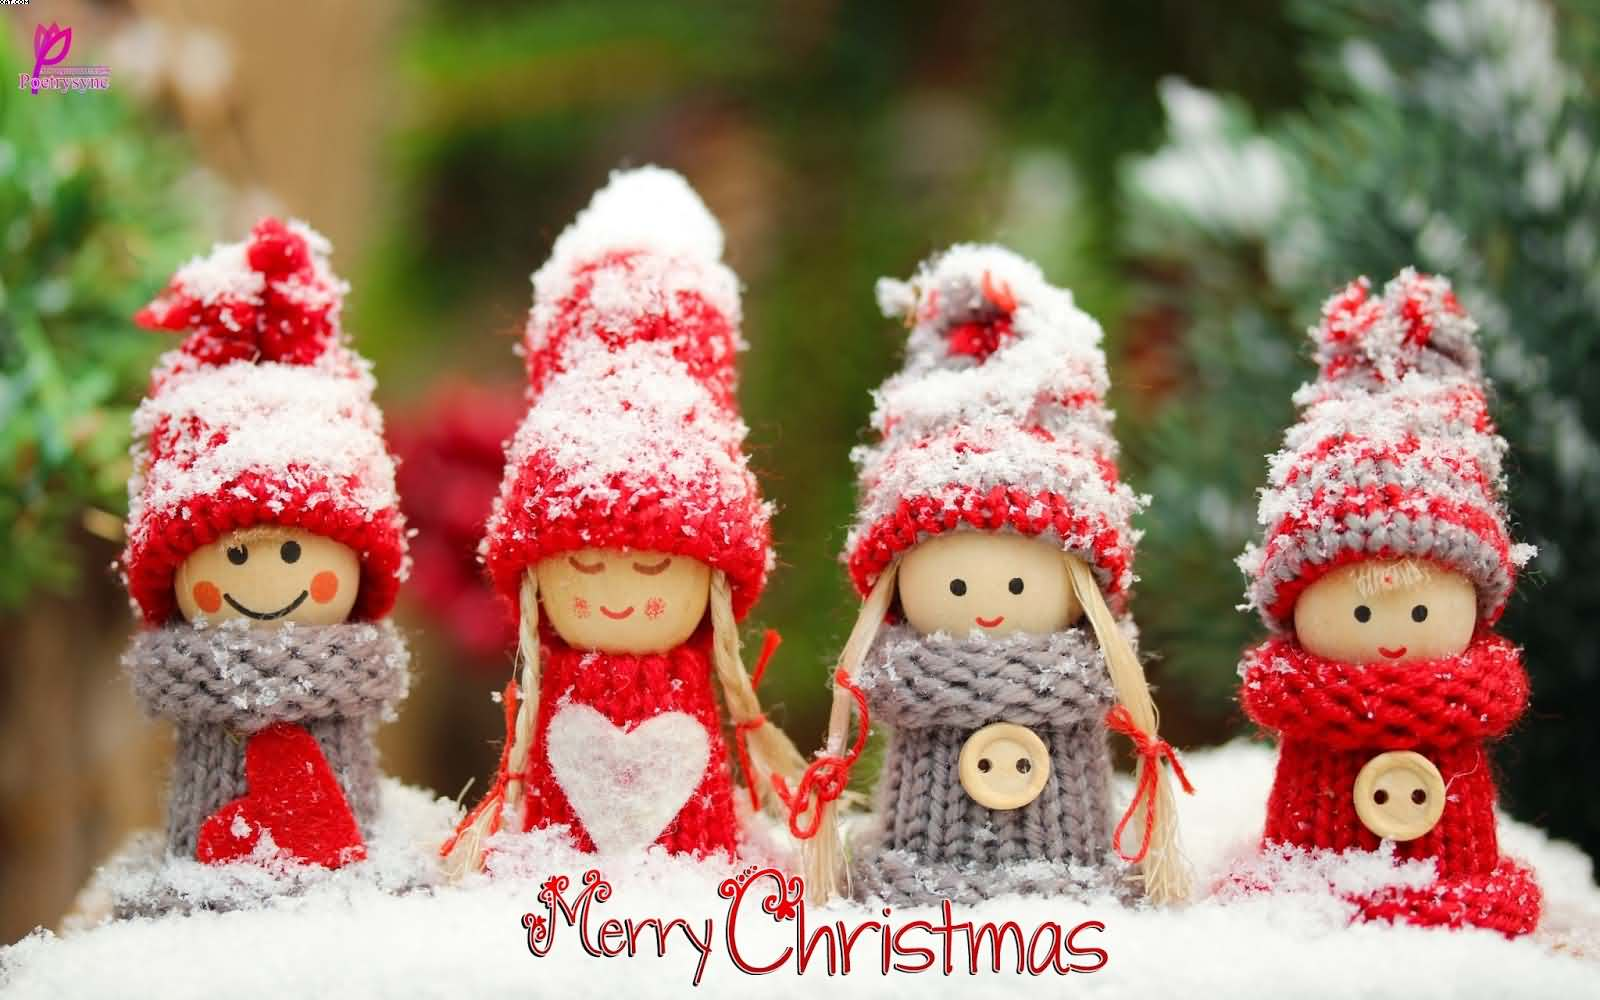 Merry Christmas wishes with beautiful dolls wallpaper